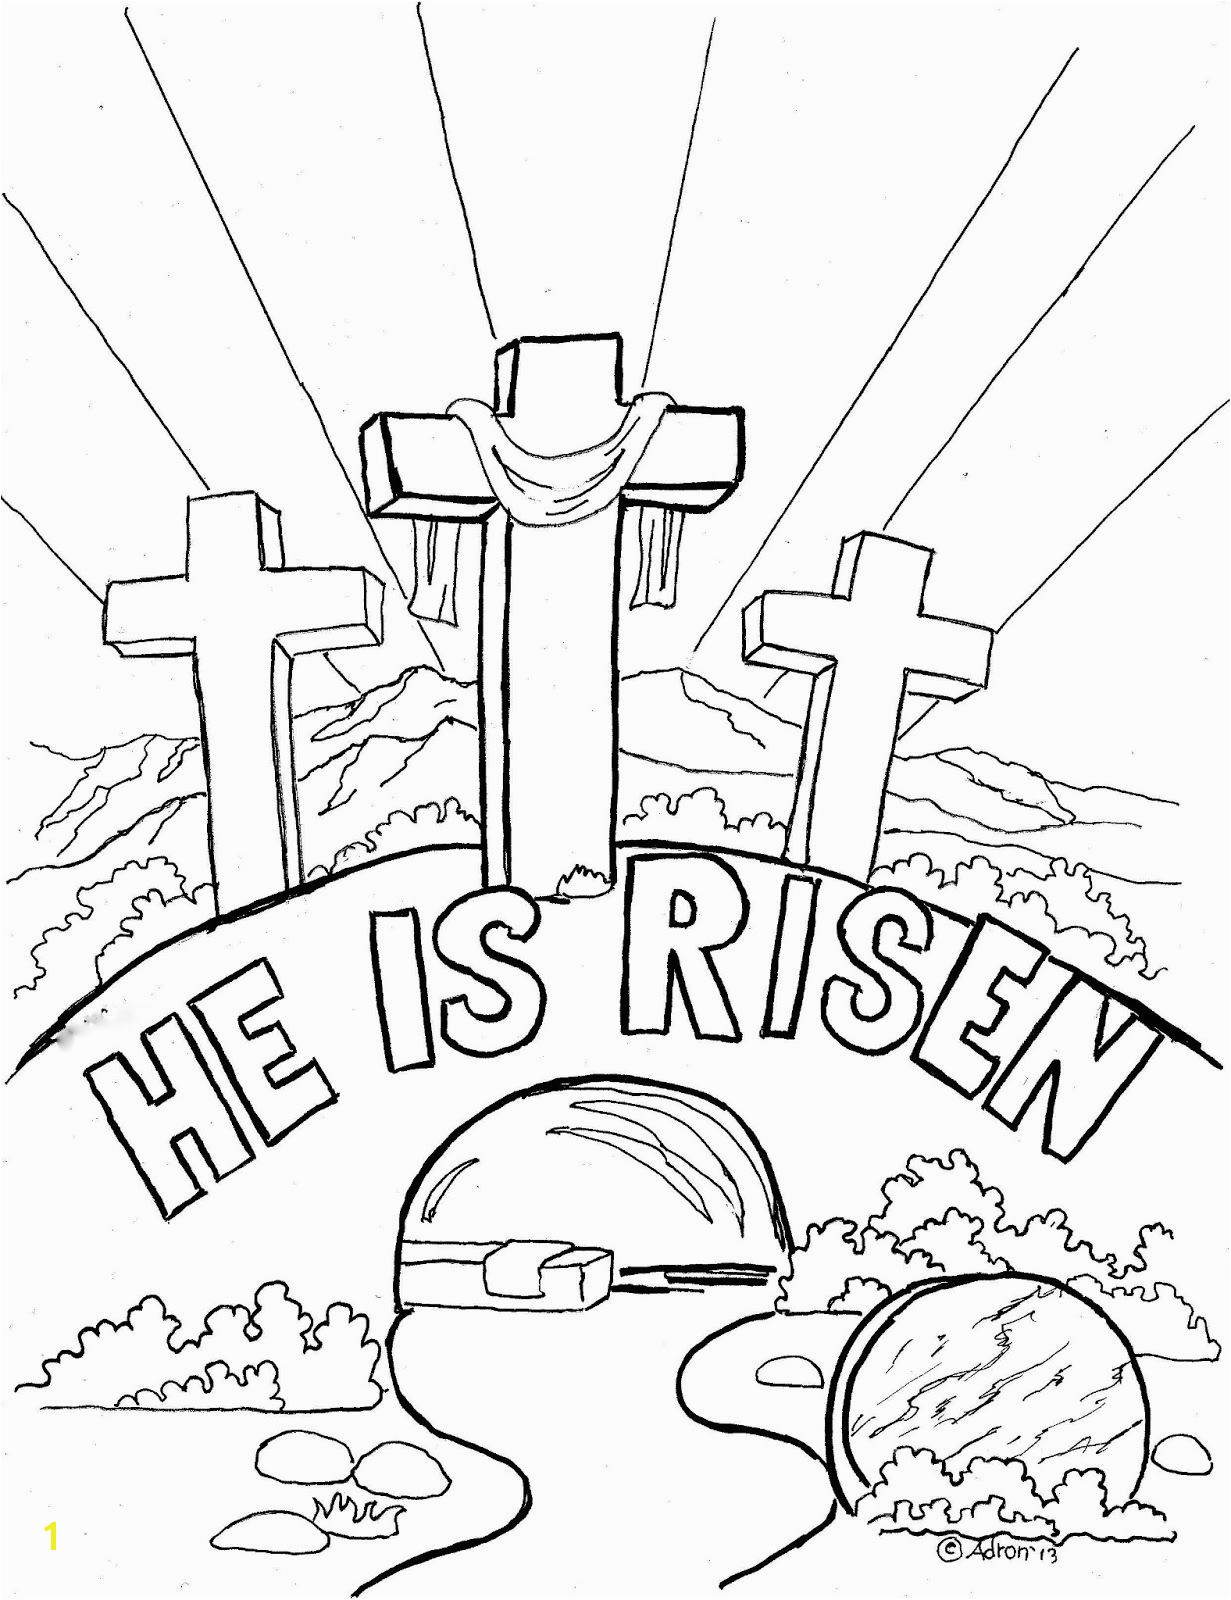 Preschool Religious Easter Coloring Pages Printable Coloring Pages for Kids by Mr Adron Easter Coloring Page for Kids